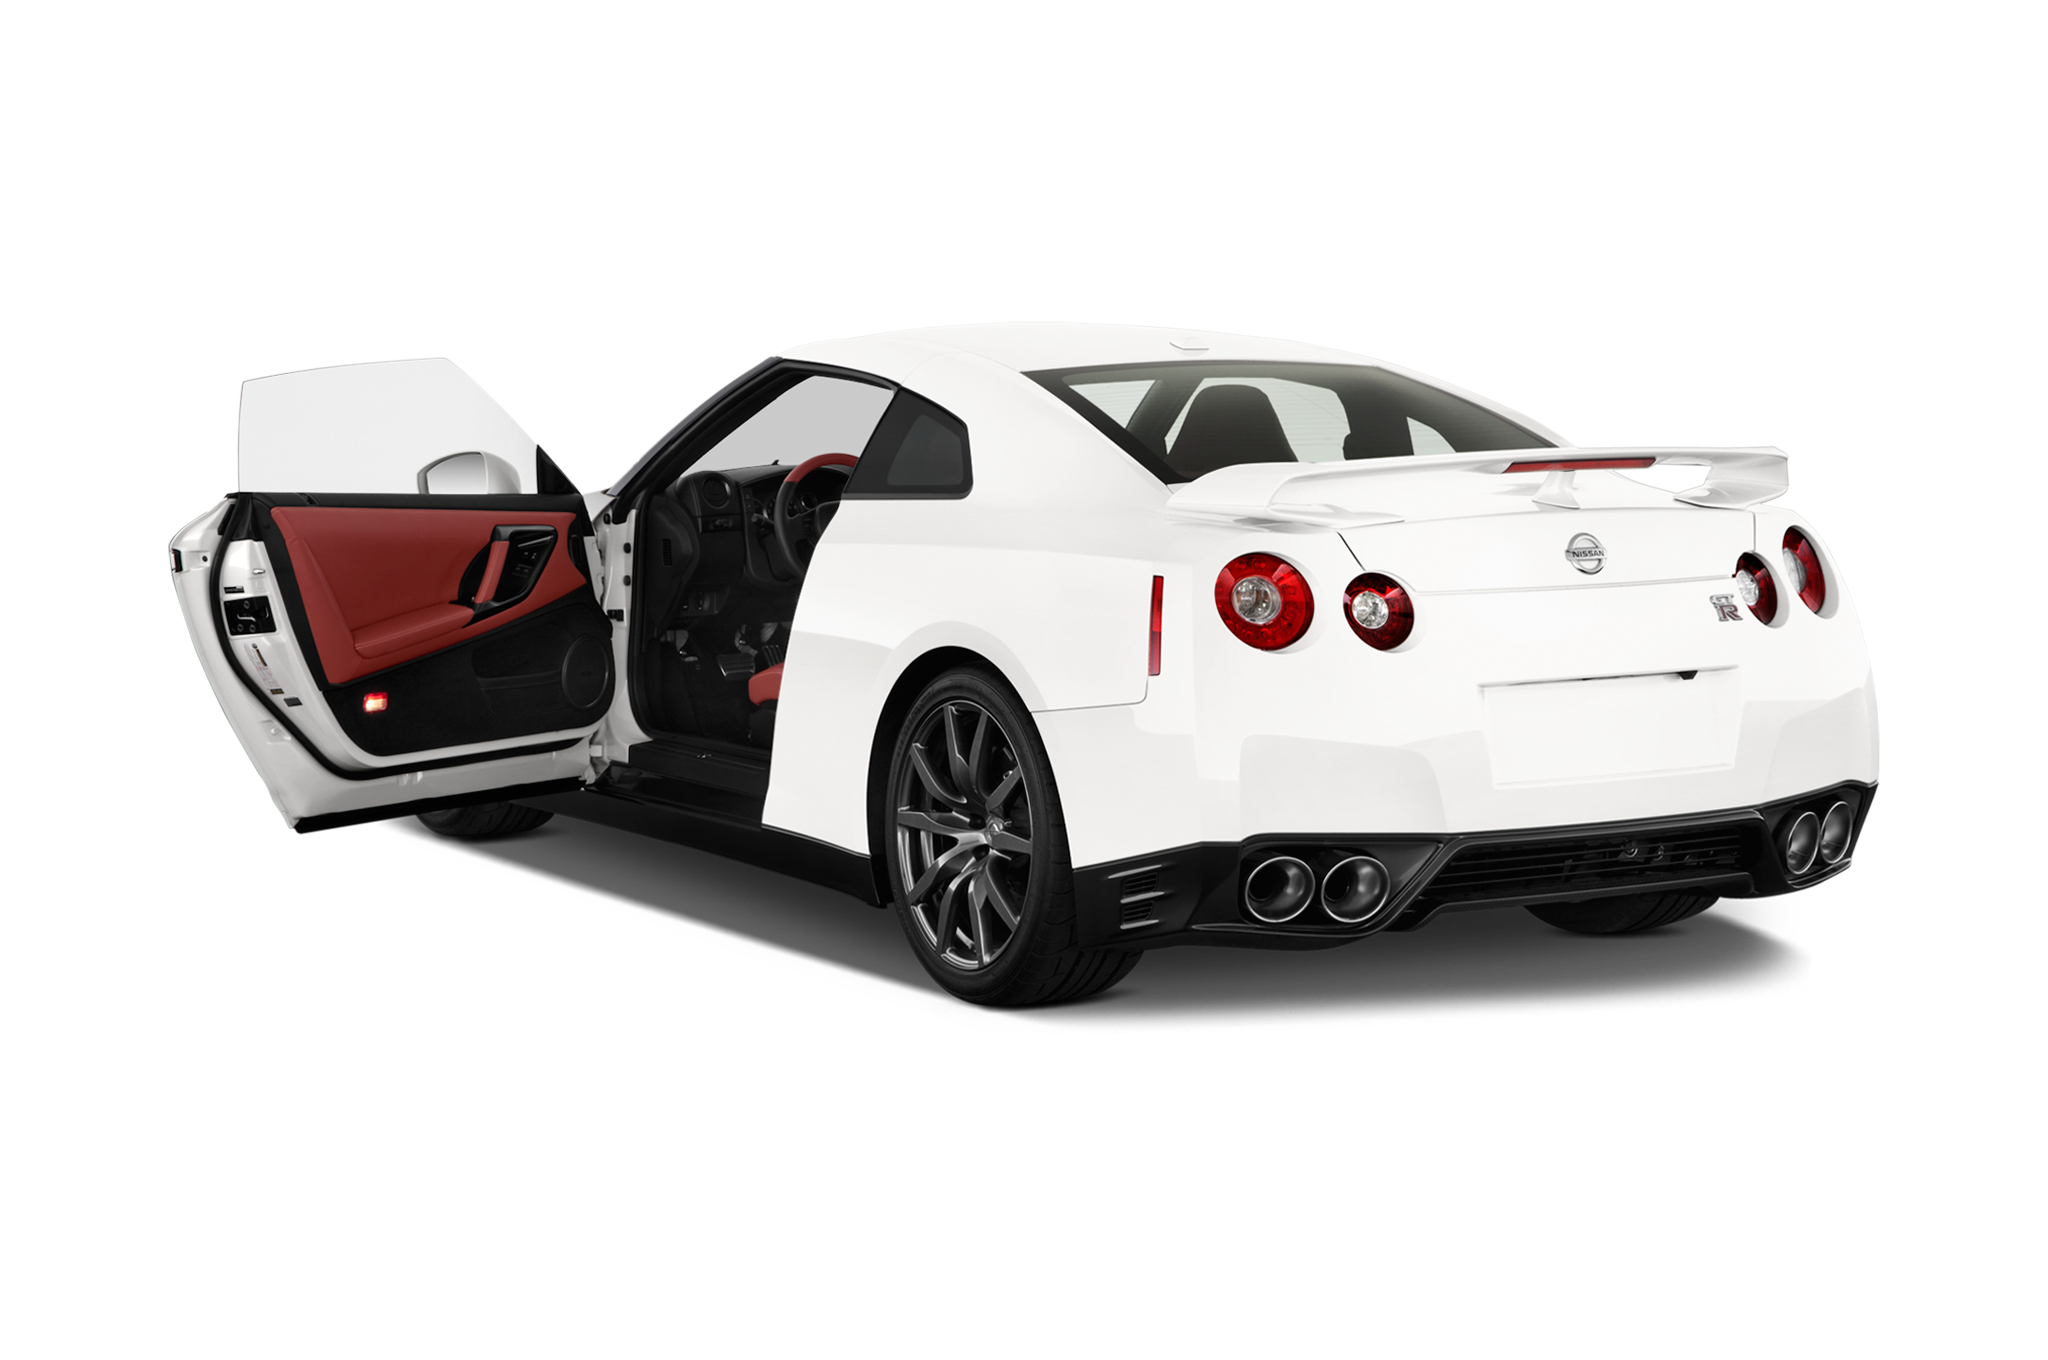 Nissan PNG Image - PurePNG | Free transparent CC0 PNG Image Library